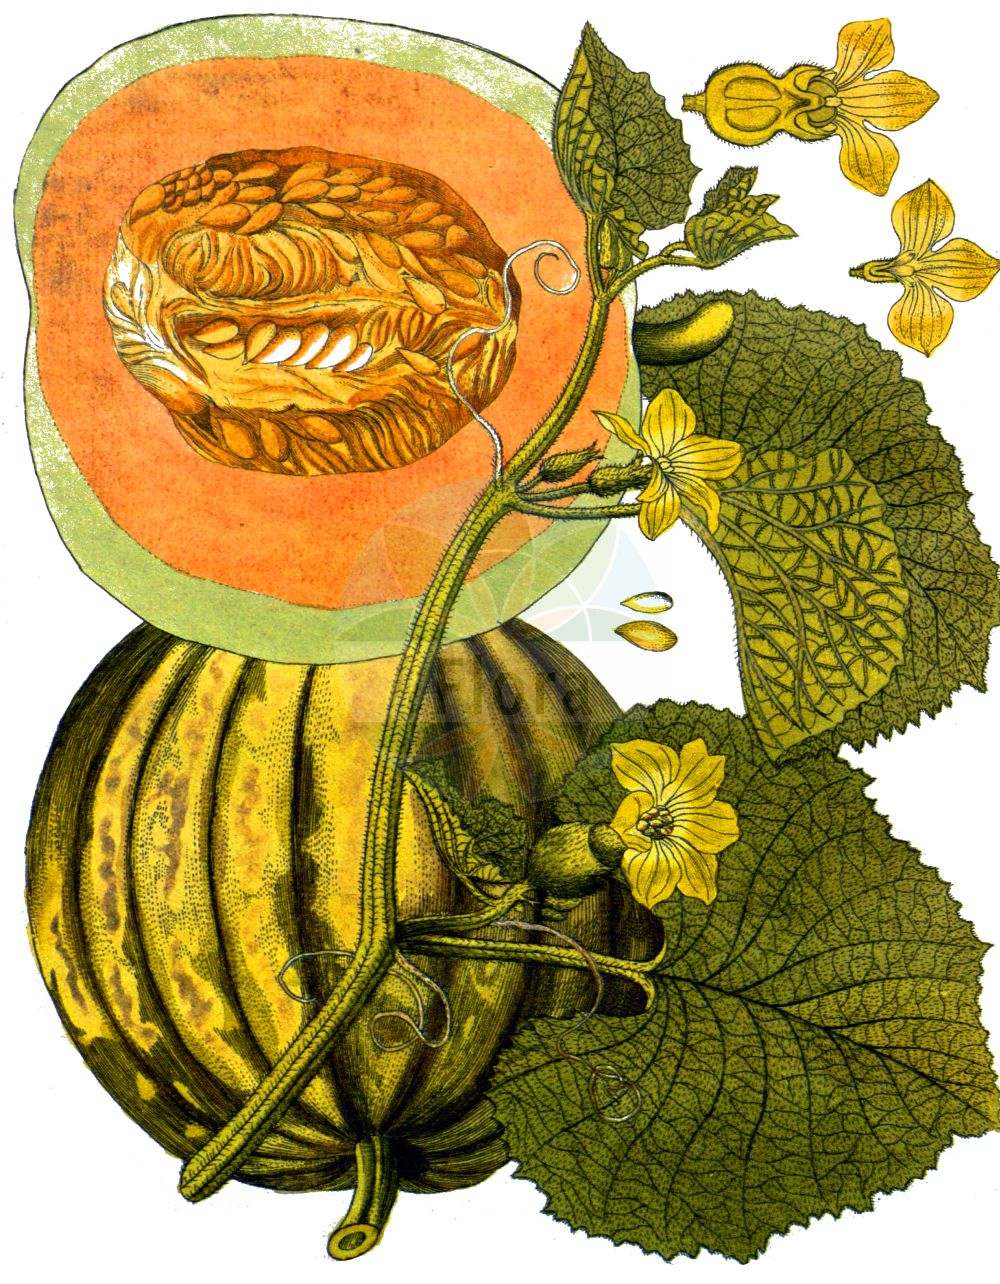 Historische Abbildung von Cucumis melo. Das Bild zeigt Blatt, Bluete, Frucht und Same. ---- Historical Drawing of Cucumis melo.The image is showing leaf, flower, fruit and seed.(Cucumis melo,Citrullus melo,Cucumis acidus,Cucumis callosus,Cucumis chate,Cucumis dudaim,Cucumis flexuosus,Cucumis melo,Cucumis trigonus,Melo agrestis,Melo dudaim,Melo sativus,Cucumis,Cucurbitaceae,Kuerbisgewaechse,Cucurbit family,Blatt,Bluete,Frucht,Same,leaf,flower,fruit,seed,Vietz (1800-1822))